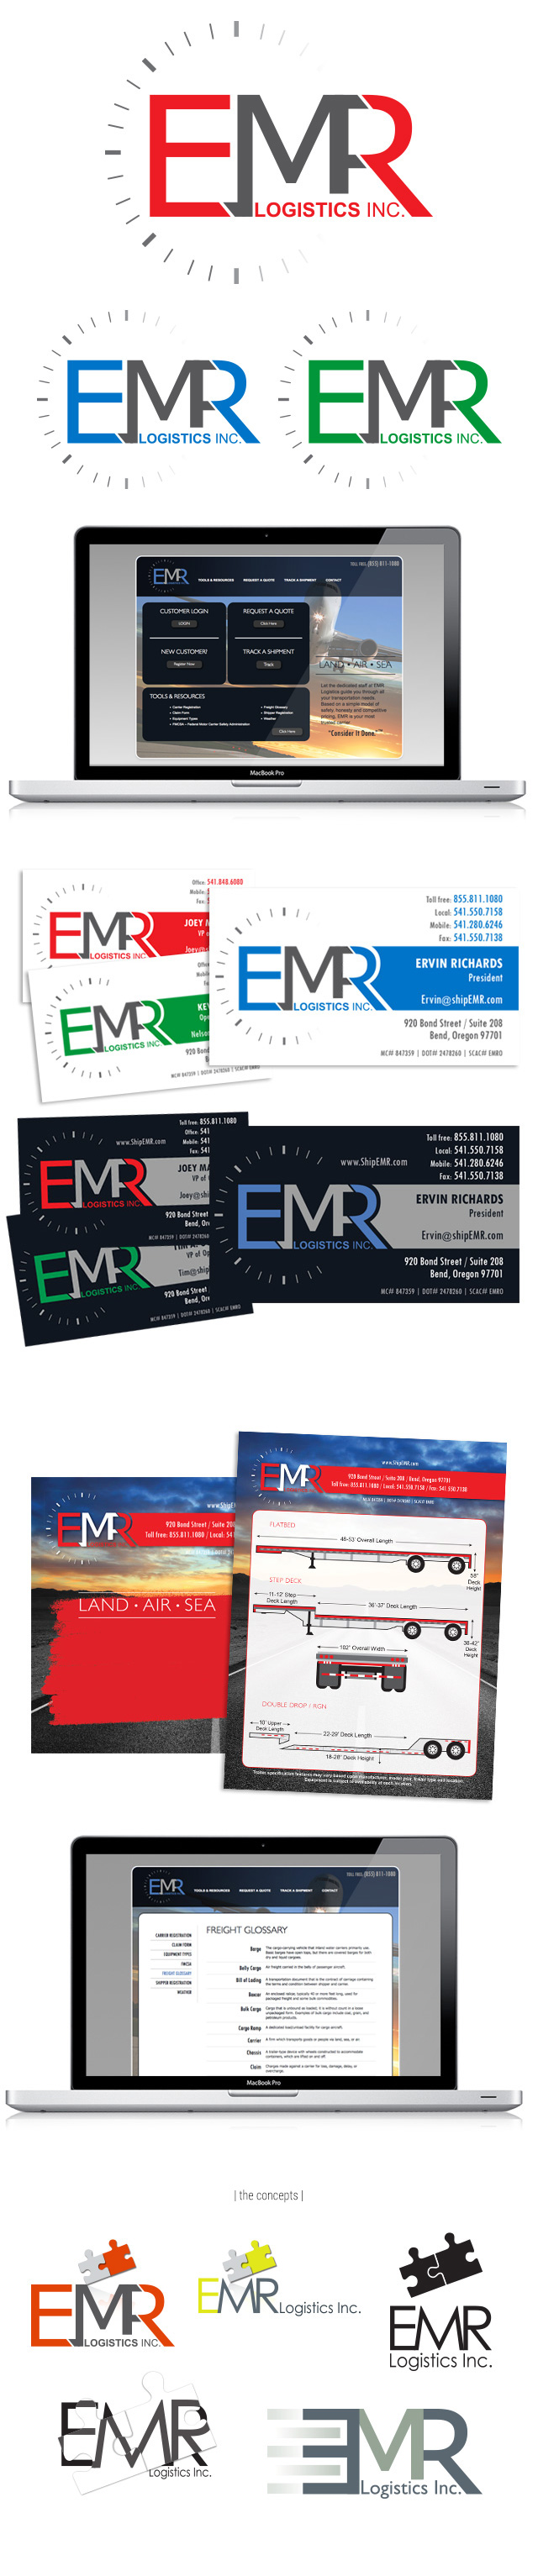 EMR Logistics, Inc. Logo / Brand Design, Website Design + Development, Print Collateral http://www.ShipEMR.com